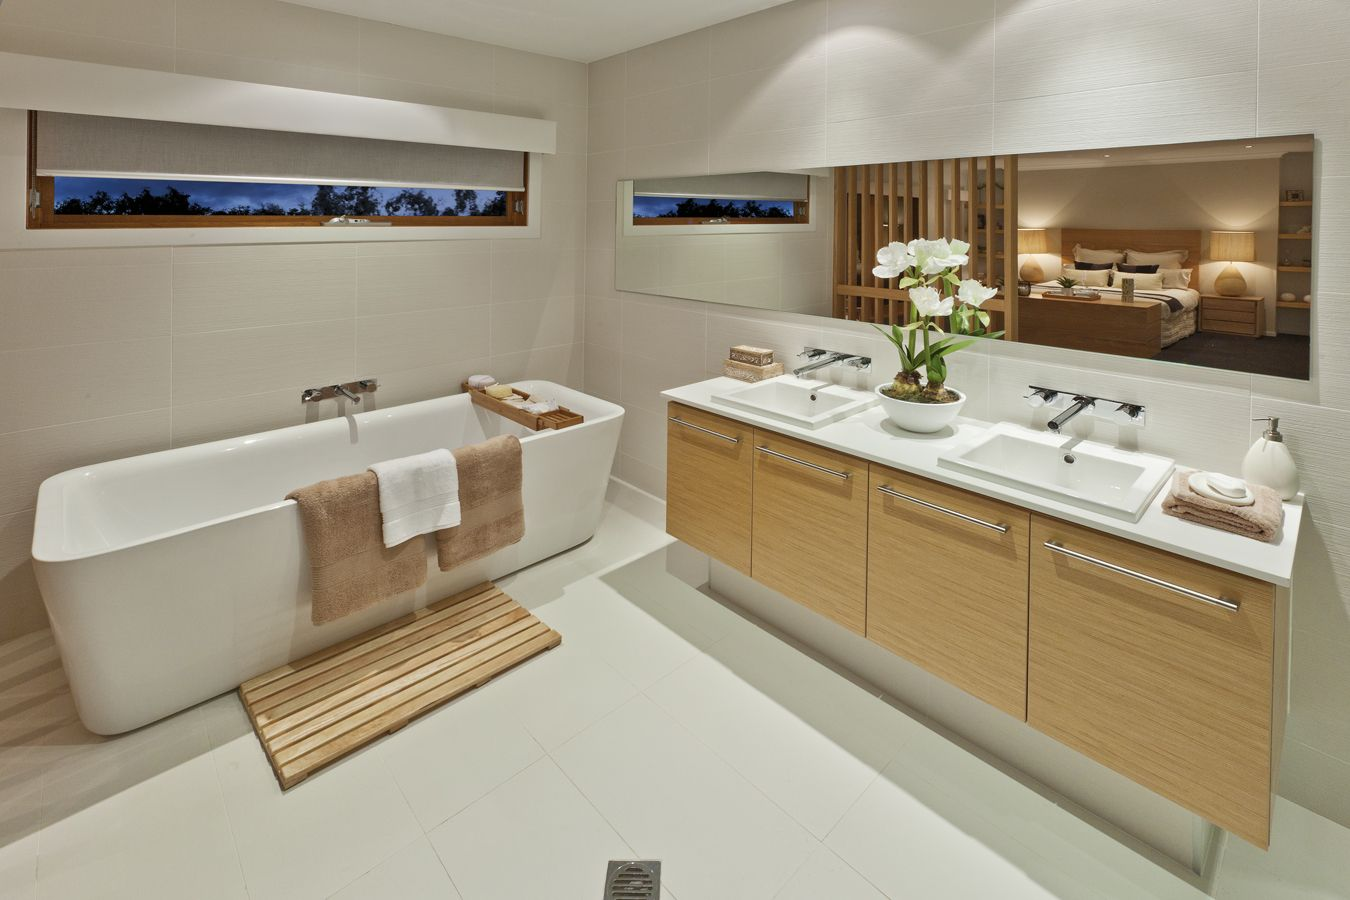 Tranquil Bathroom Metricon Homes 2141 Snow Caesarstone Bathrooms Pinterest